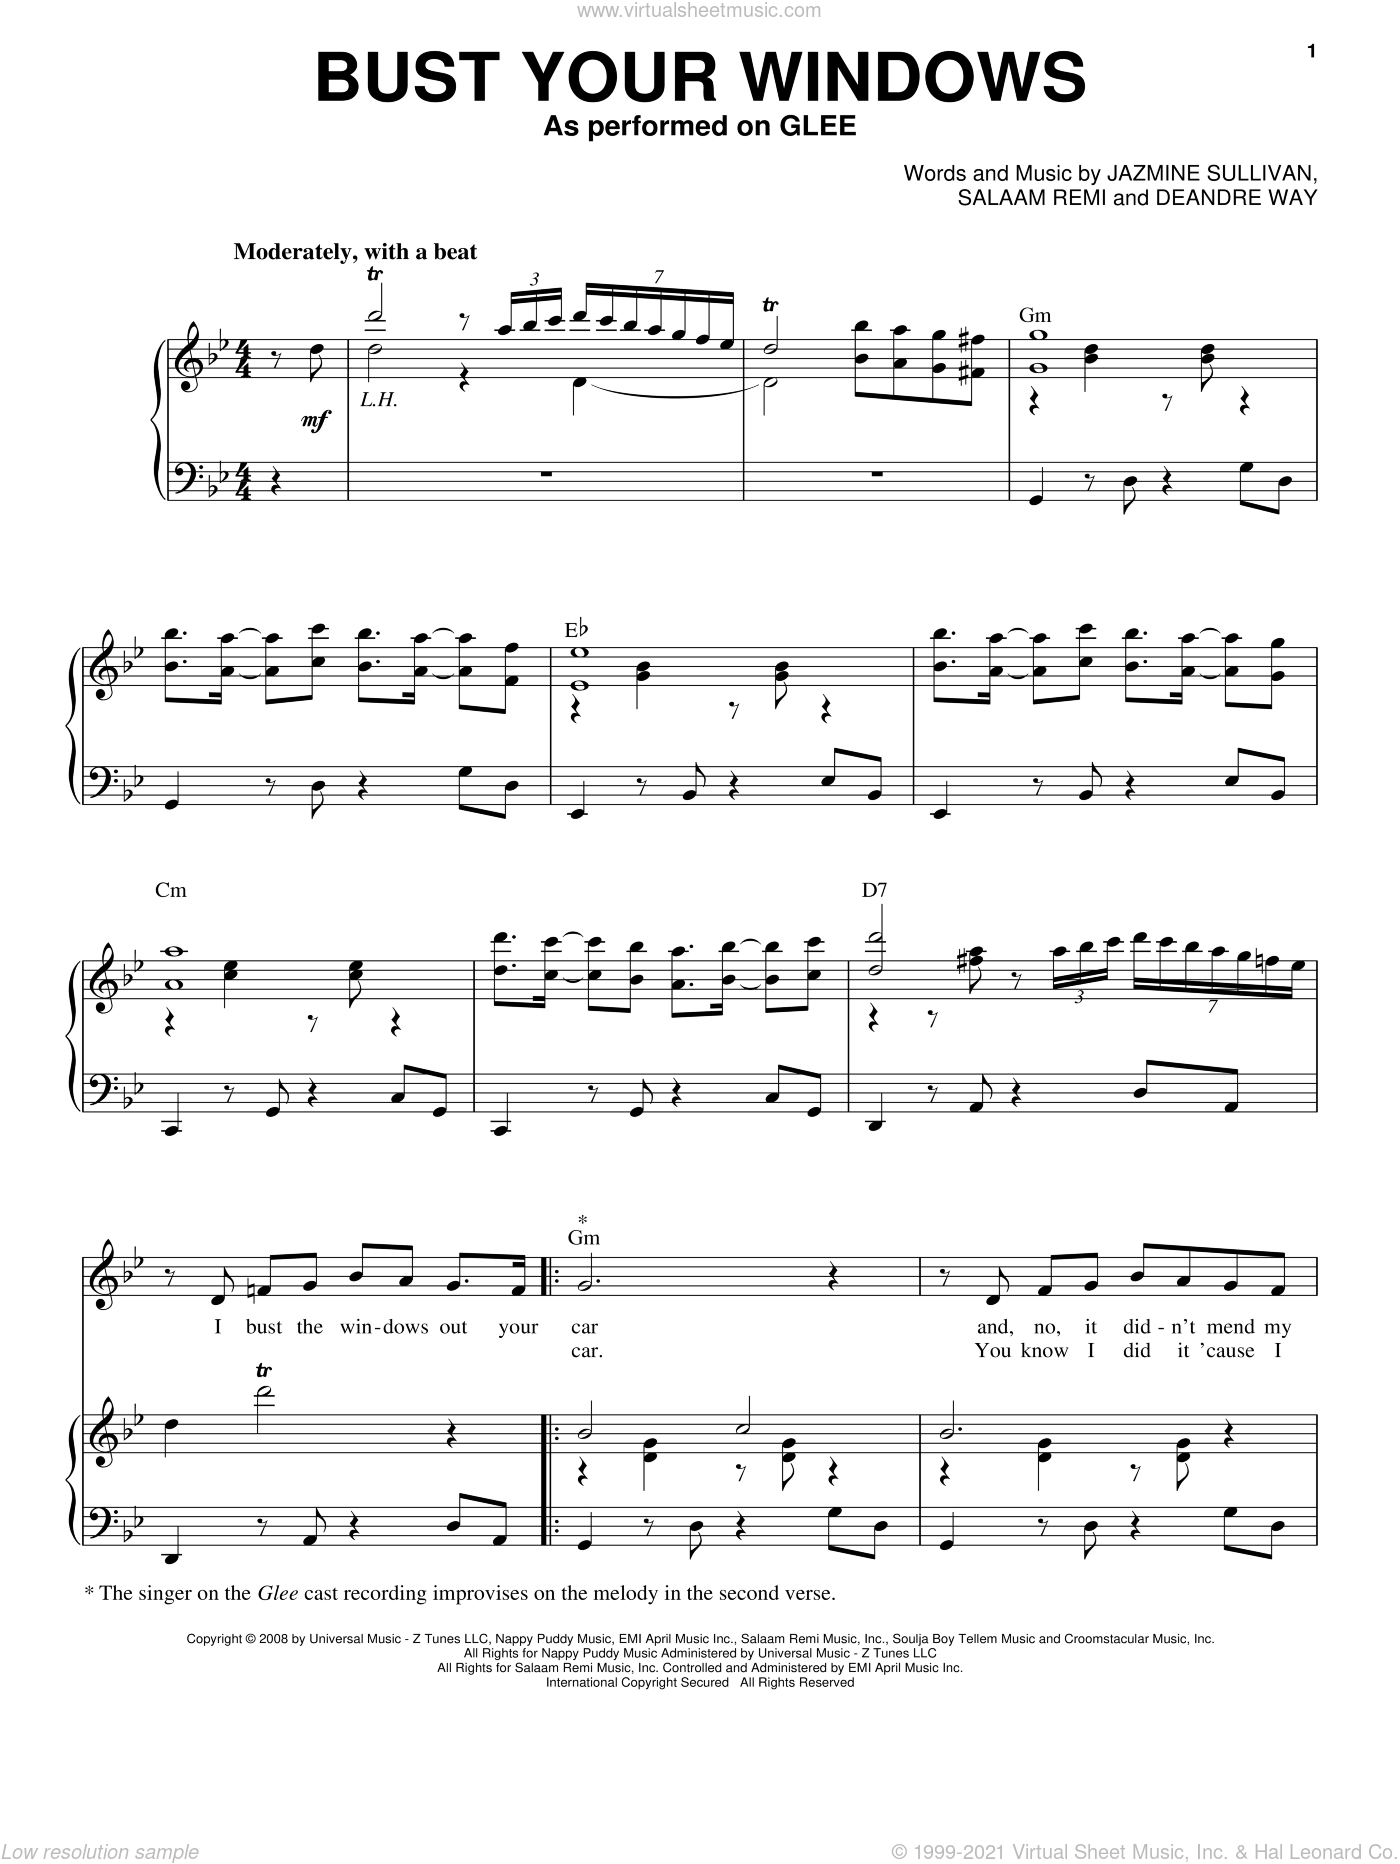 Bust Your Windows sheet music for voice and piano by Glee Cast, Miscellaneous, Jazmine Sullivan and Salaam Remi, intermediate. Score Image Preview.